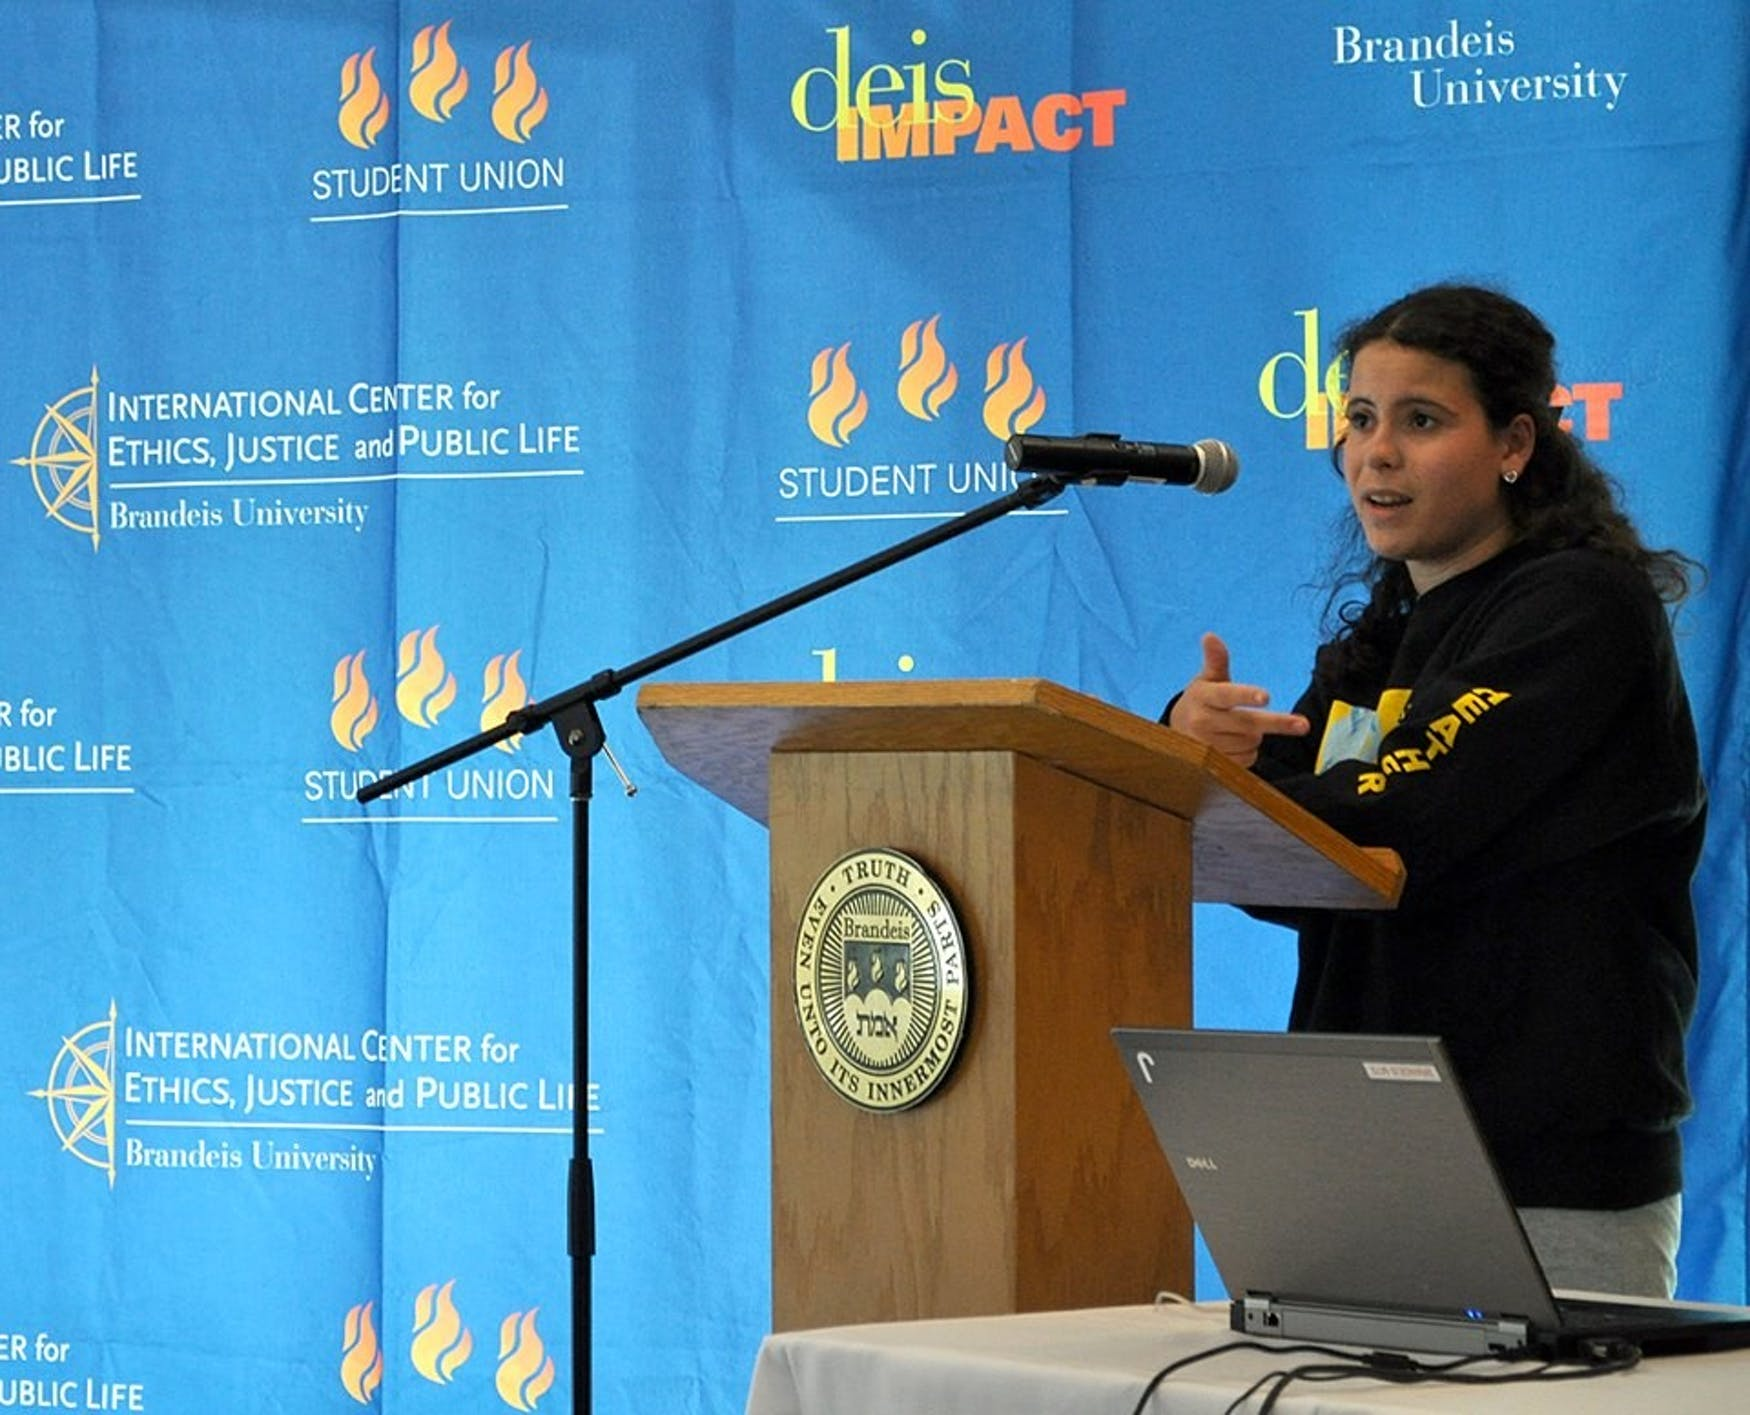 SPEAK TRUTH TO POWER: Heather Spector '17 takes the podium at last year's 'DEIS Impact festival of social justice.